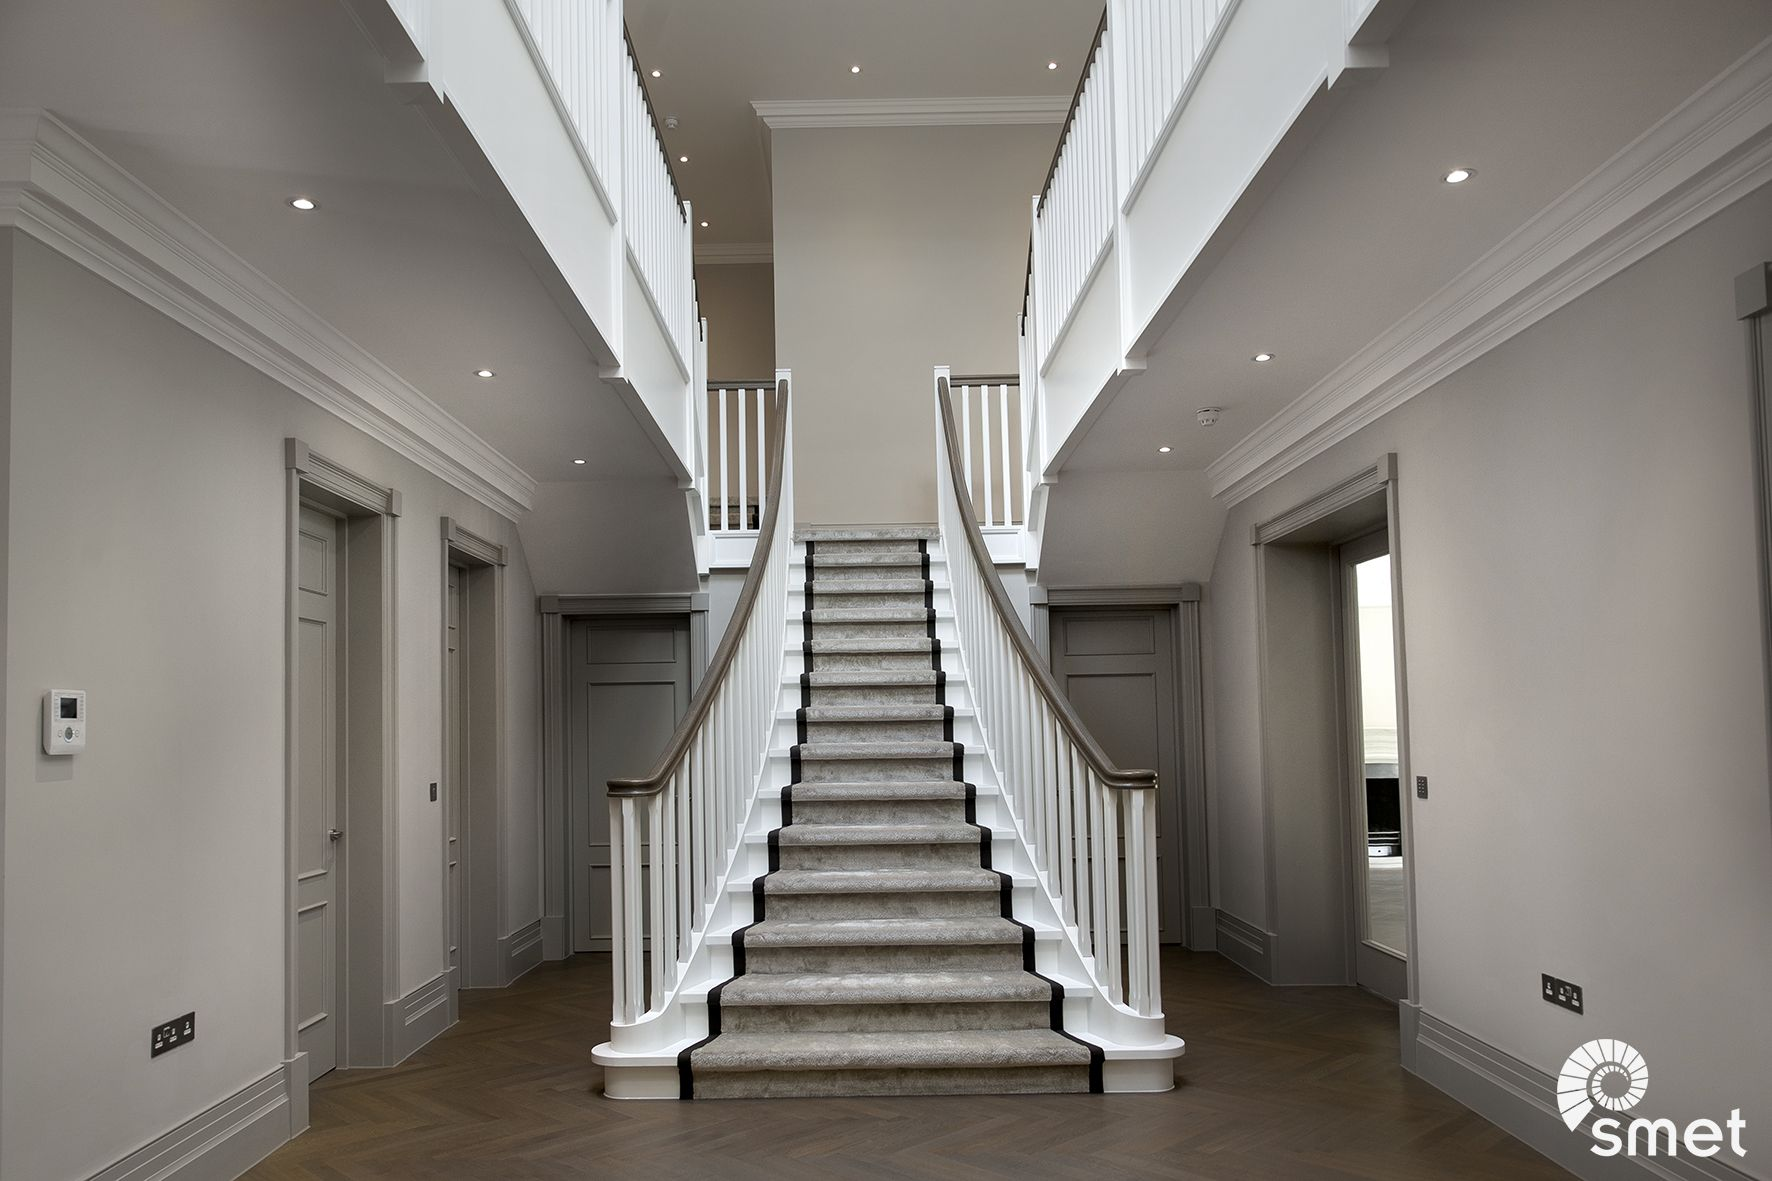 Best Pin By Alexis On Home Ideas Bespoke Staircases 400 x 300